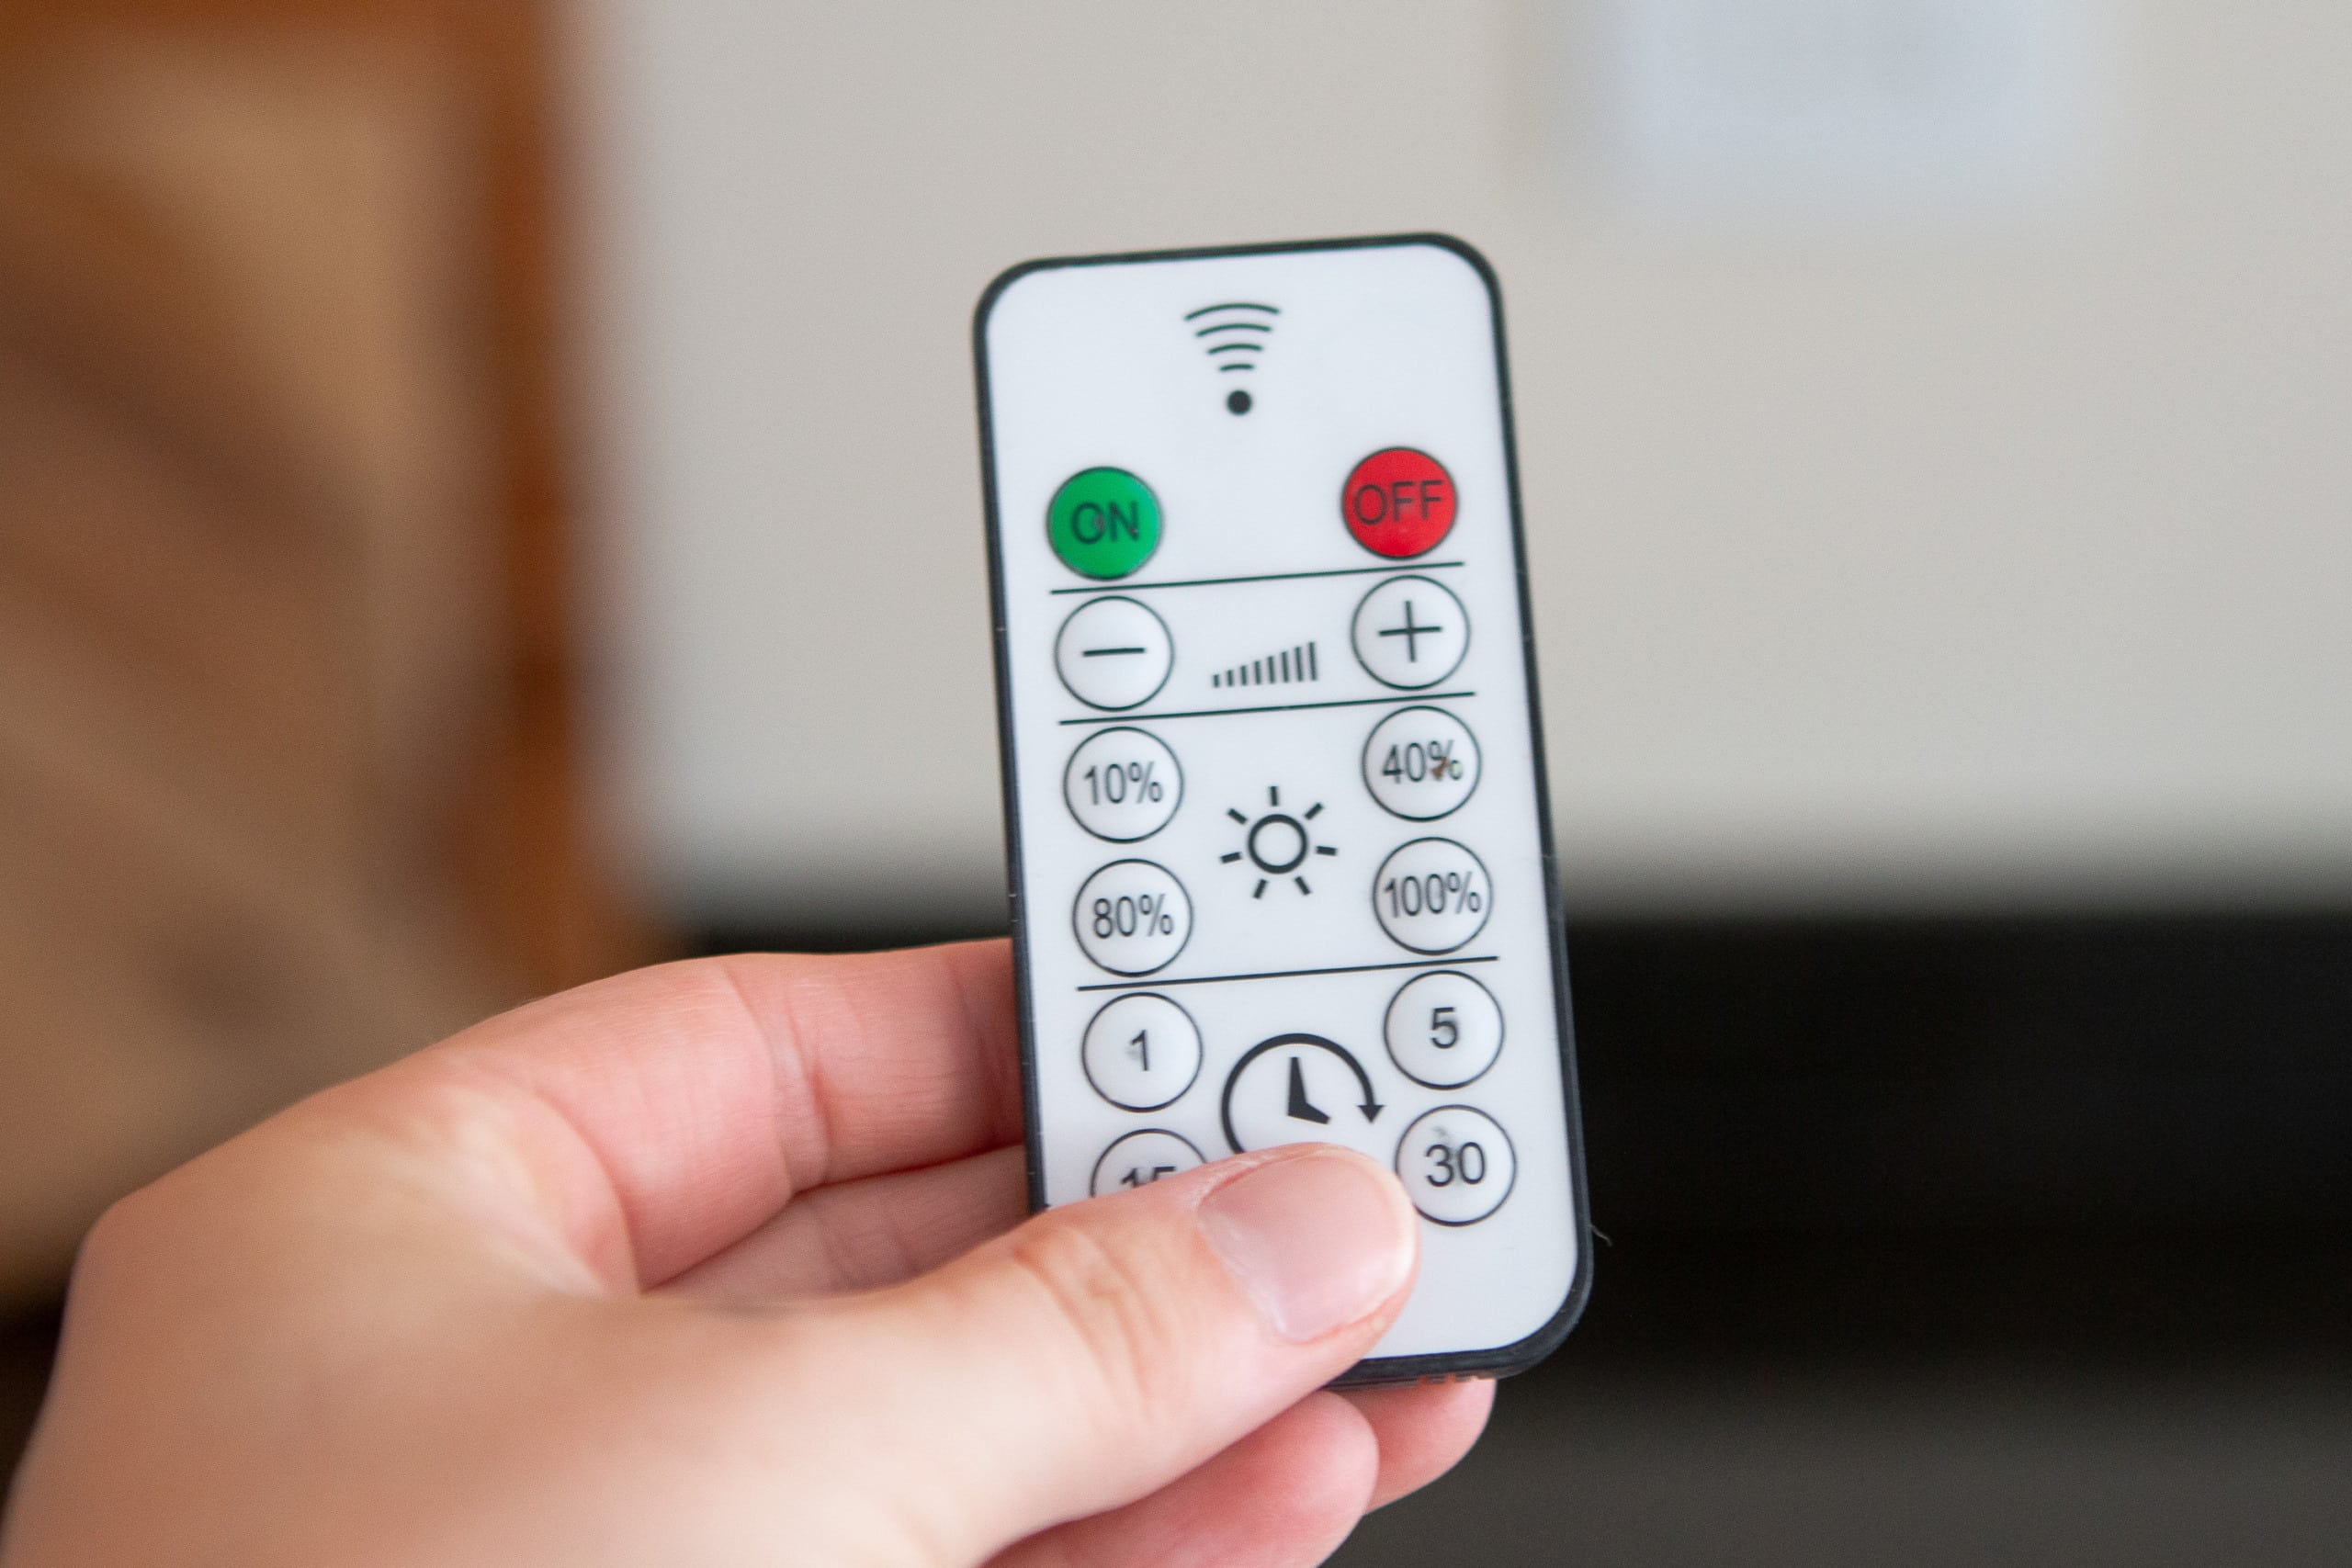 Remote control for under cabinet lighting in the kitchen